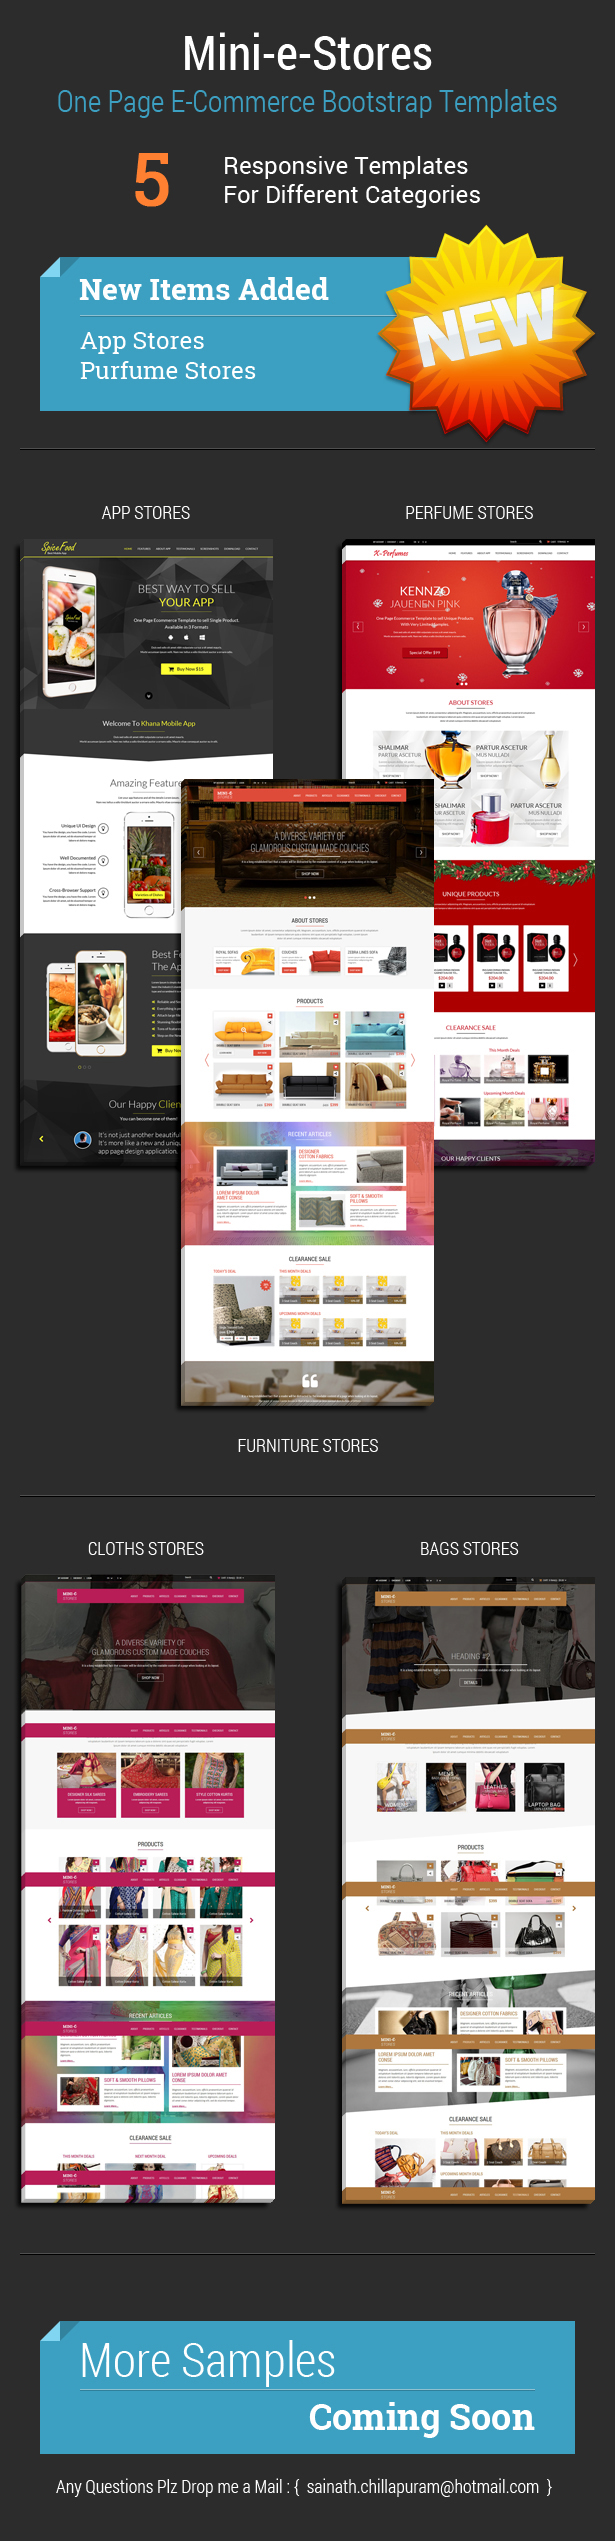 Mini-E-Stores - One page multi-purpose e-commerce templates